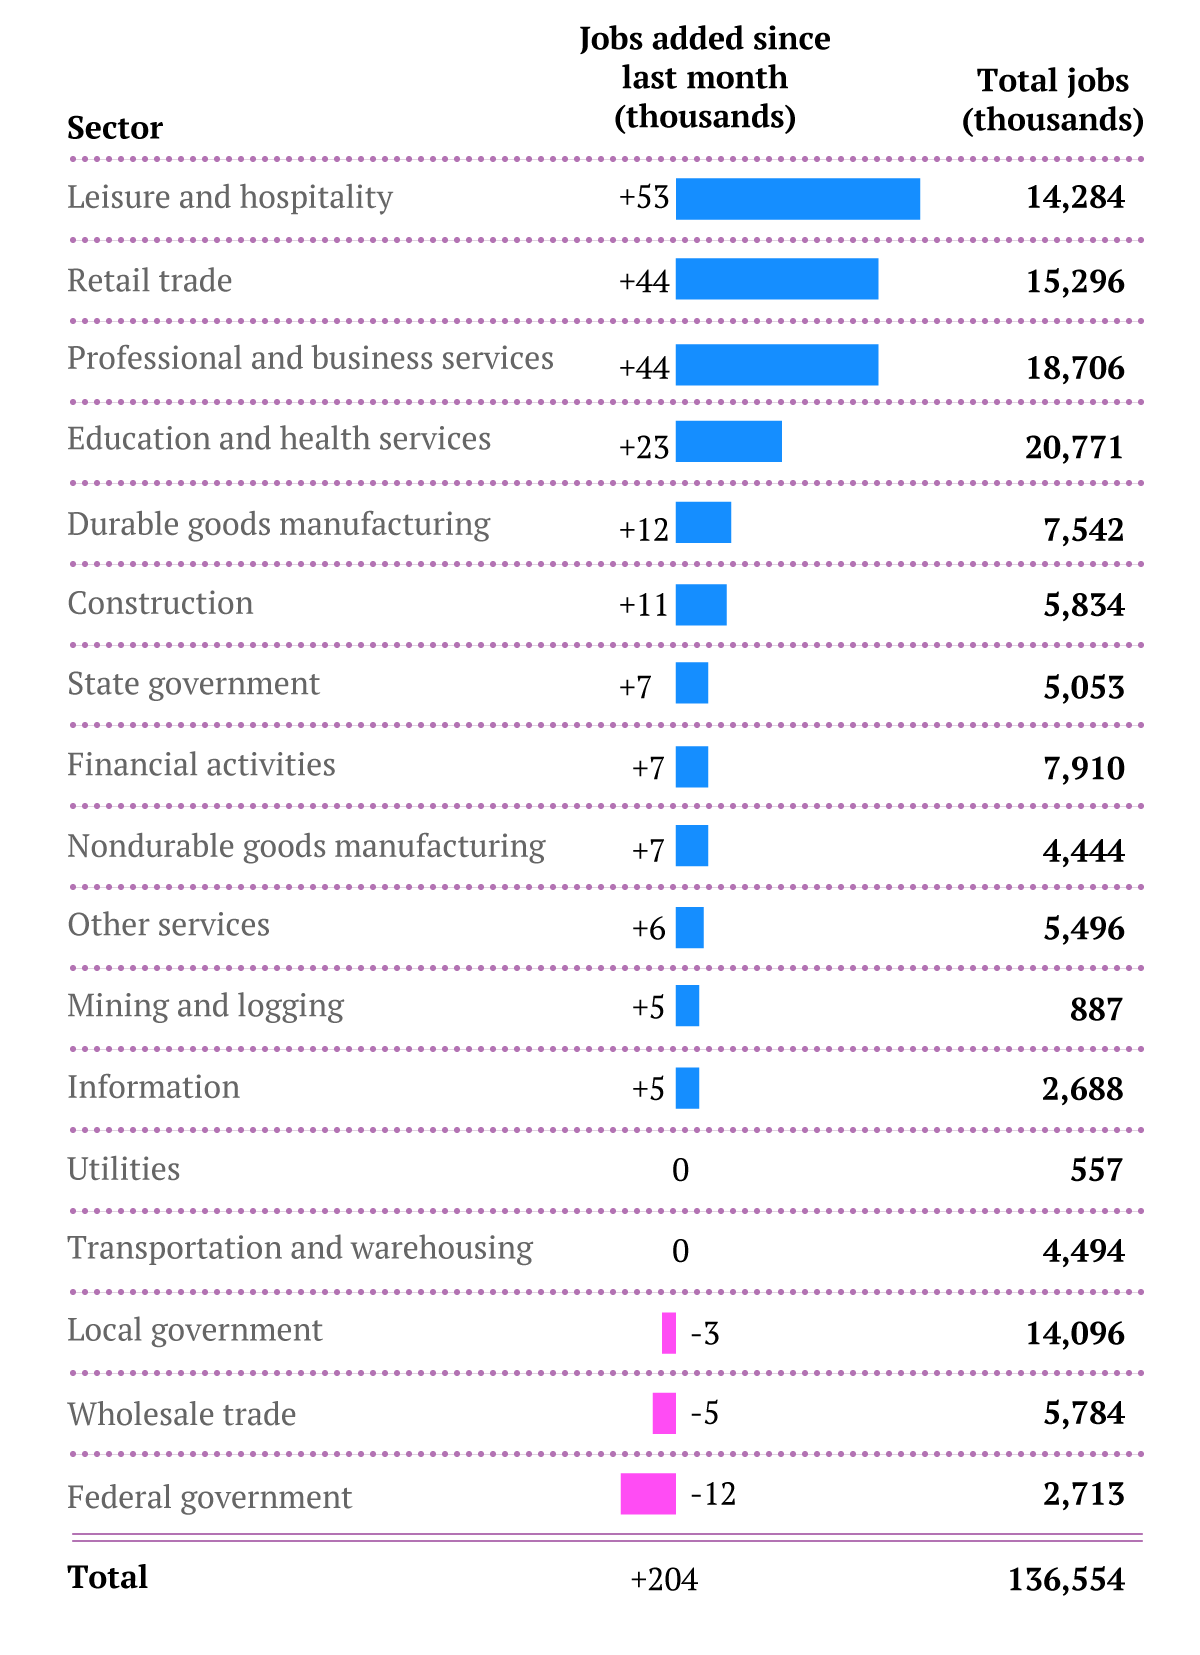 Jobs-by-sector-Oct13